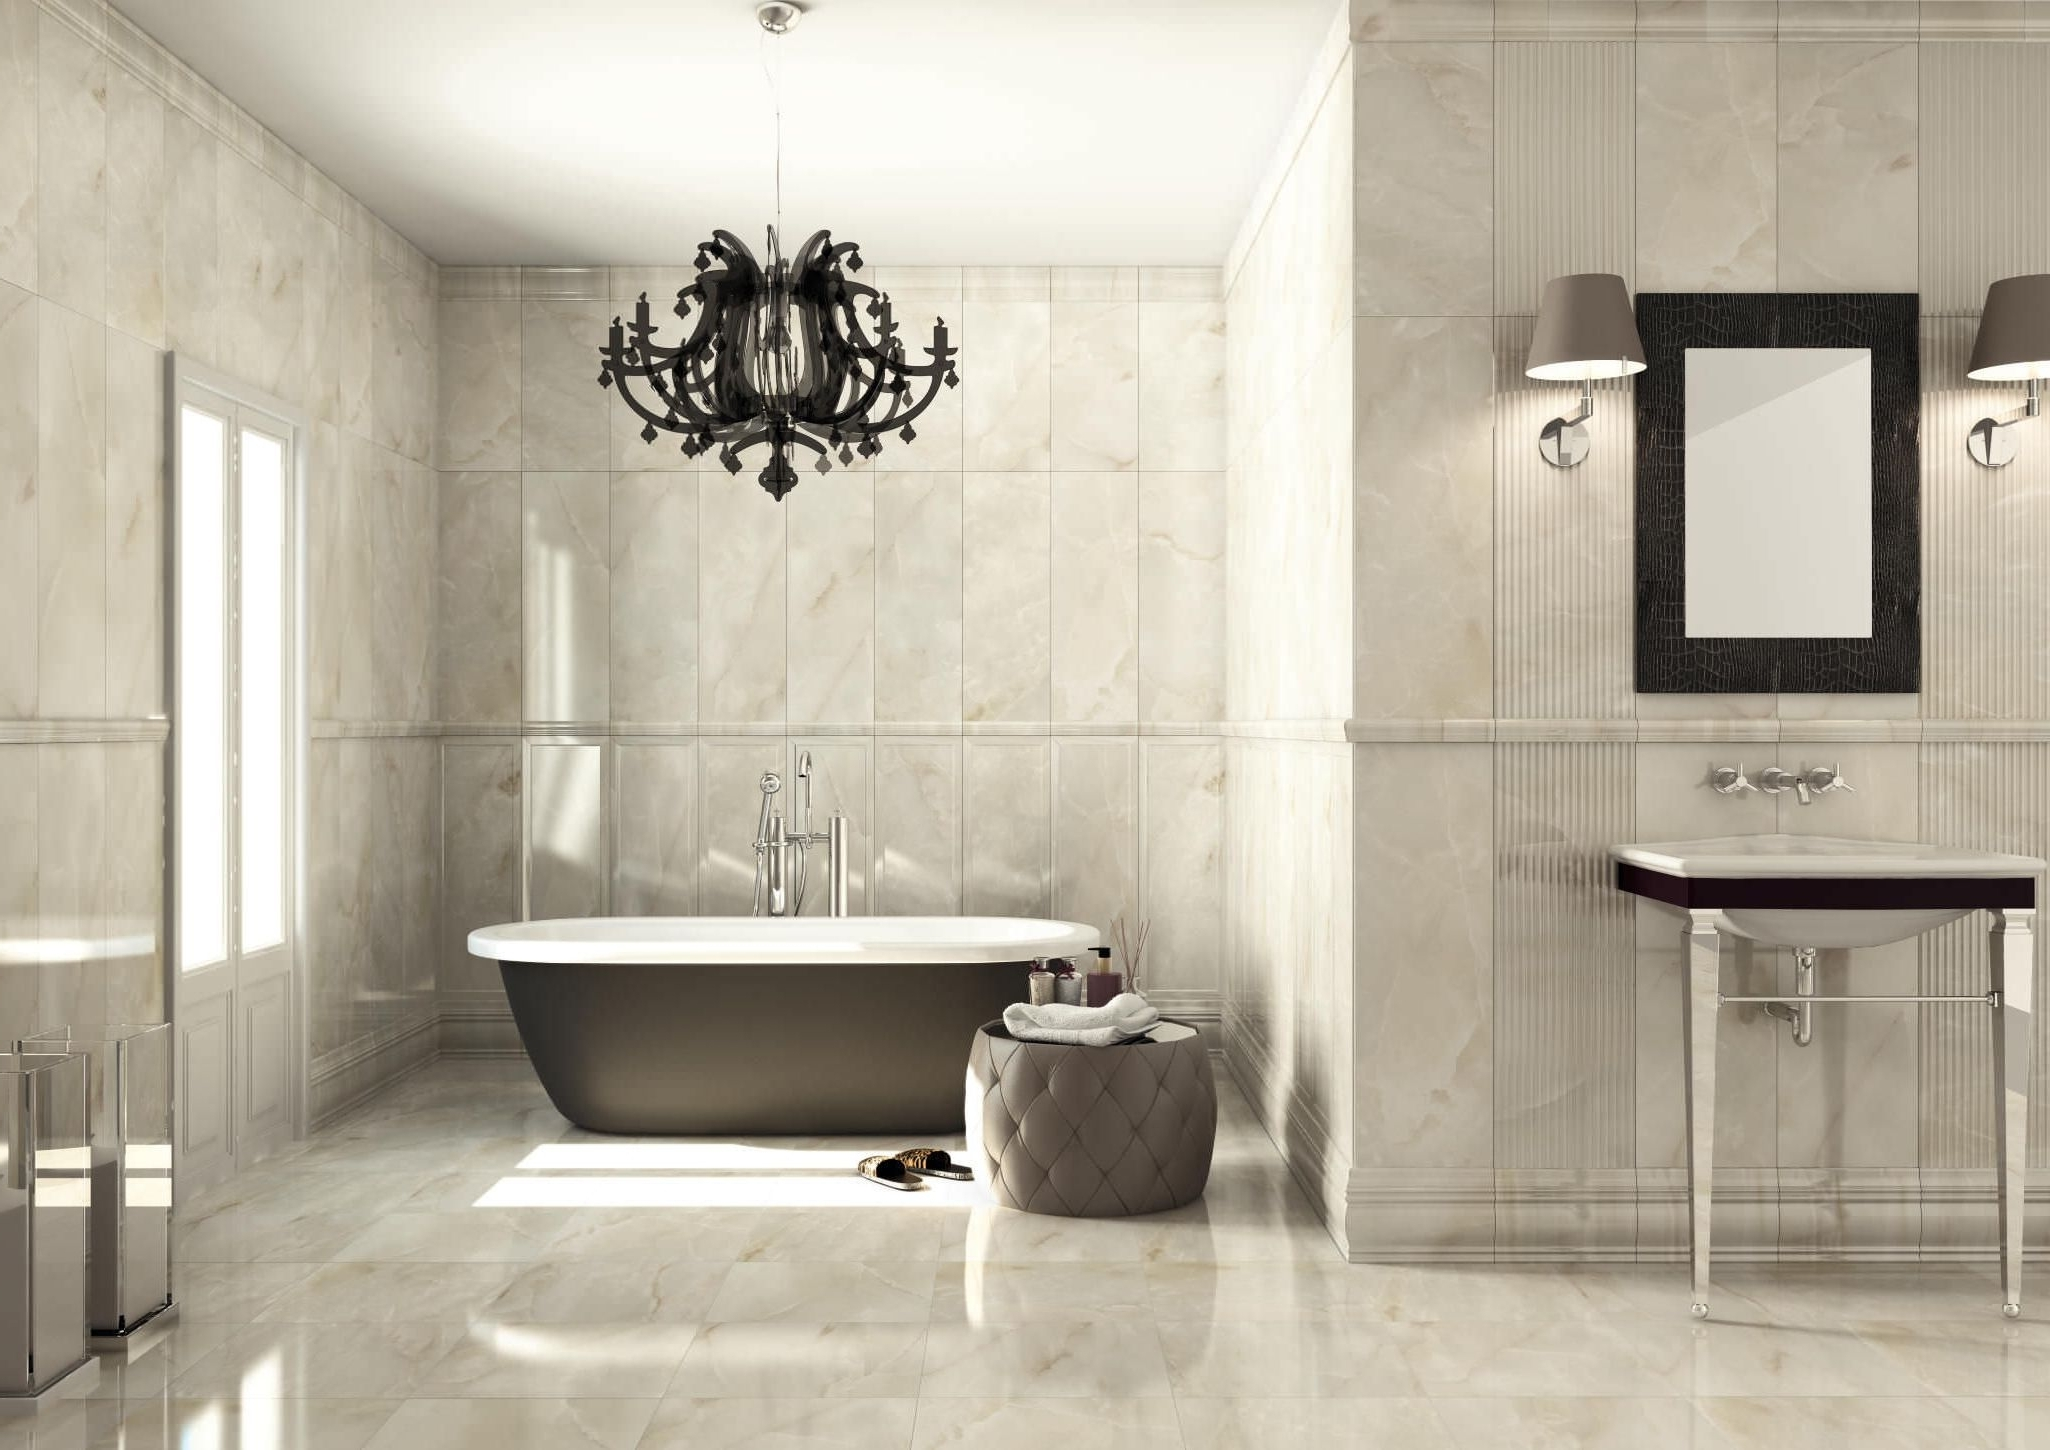 Current Chandeliers For Bathrooms Intended For Light : Amazing Gray Marble Bathroom Wall With Nice Chandelier (View 7 of 20)